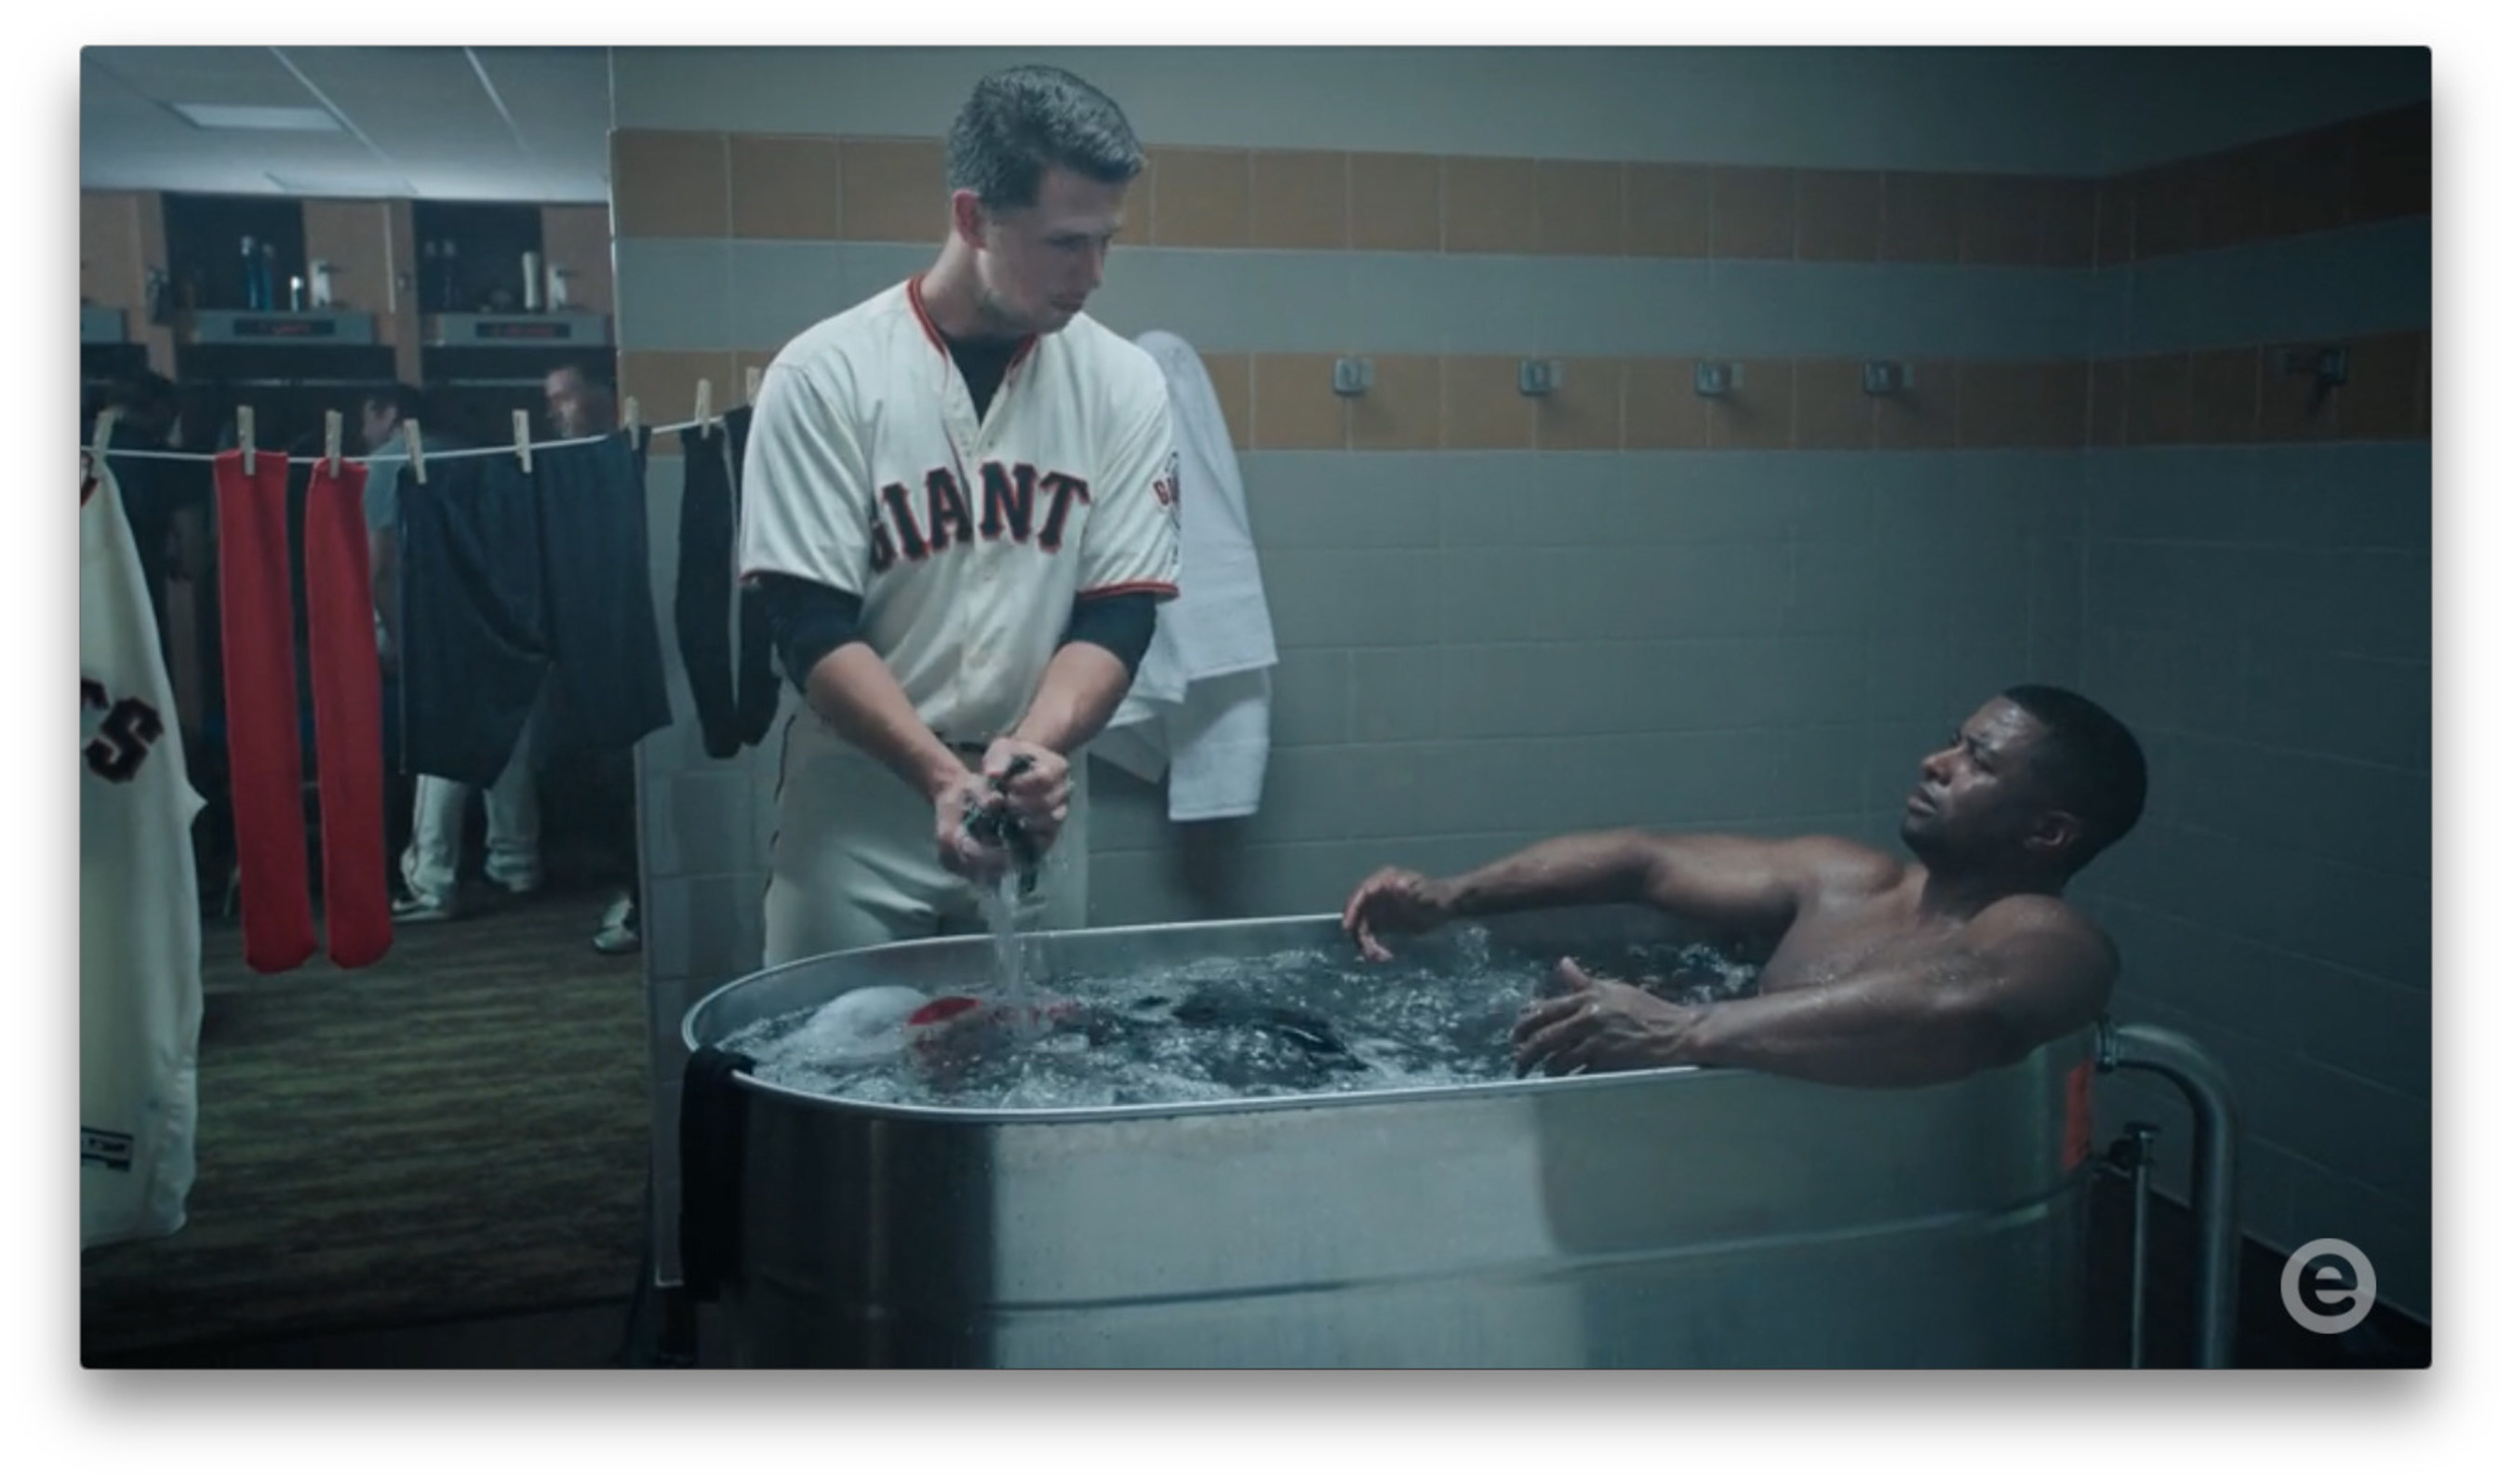 Buster Posey, Giants baseball player, in new Esurance commercial.